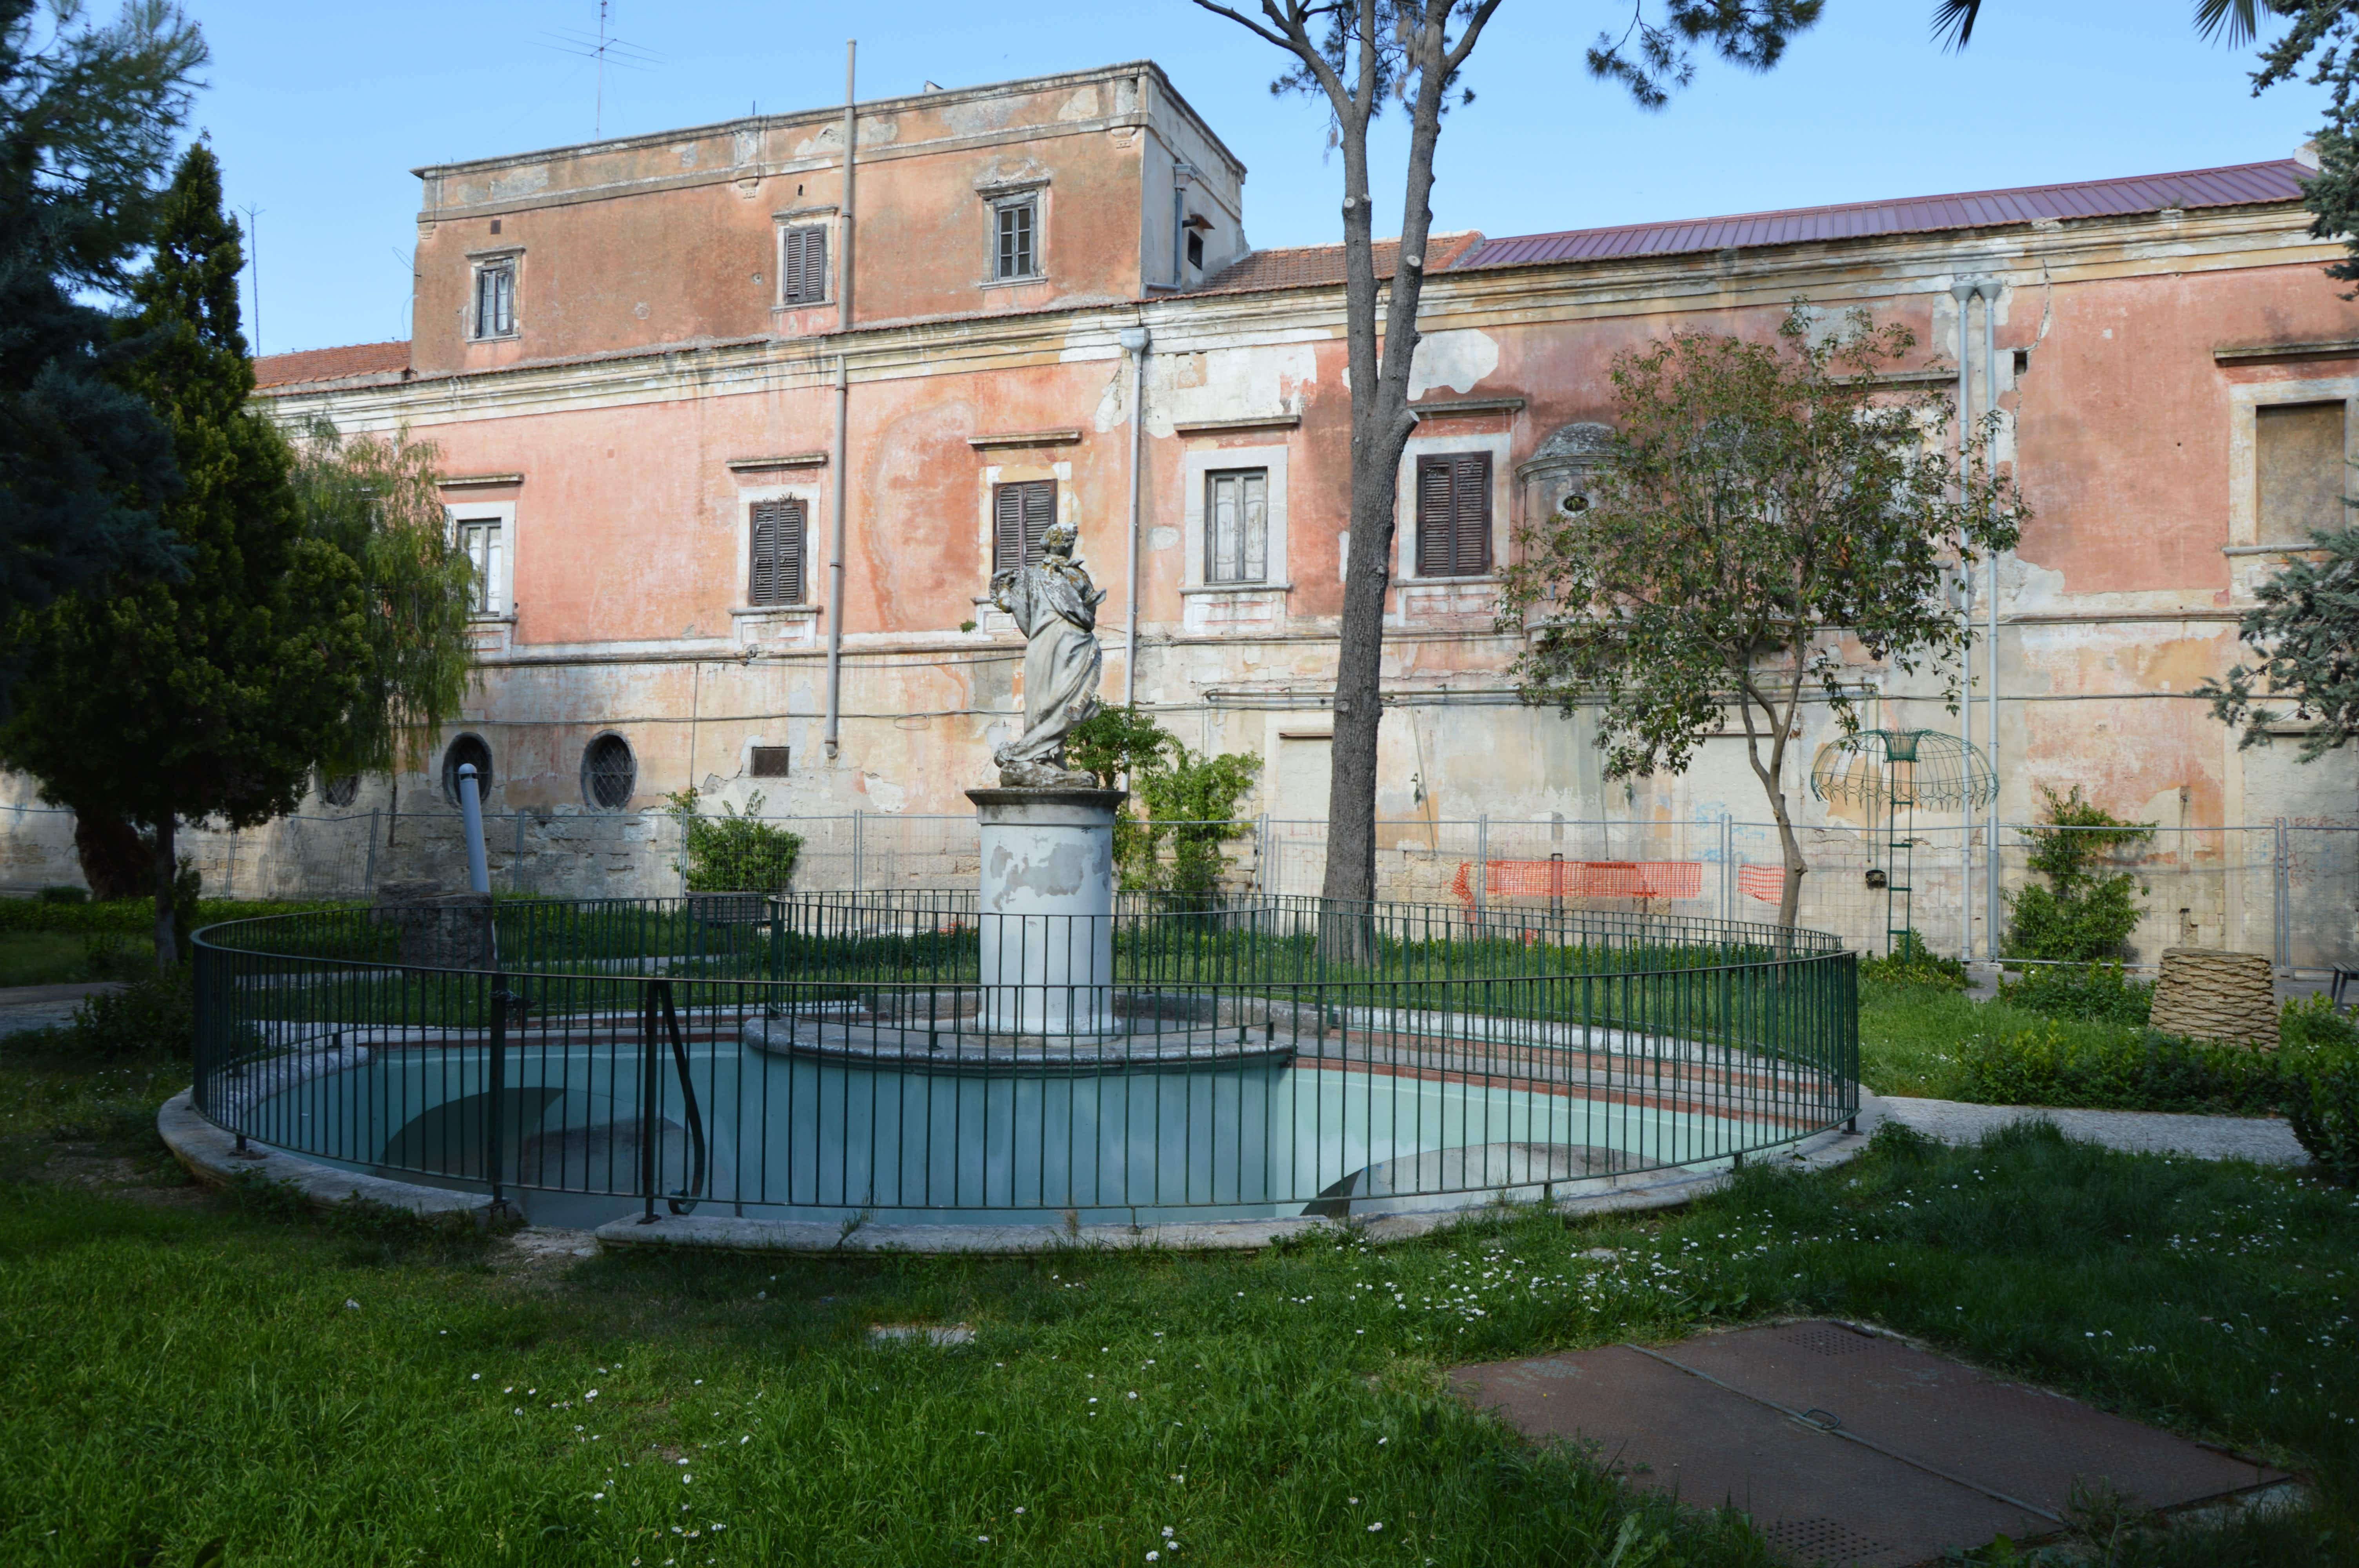 How you could become the owner of a historical Italian property...without paying a penny